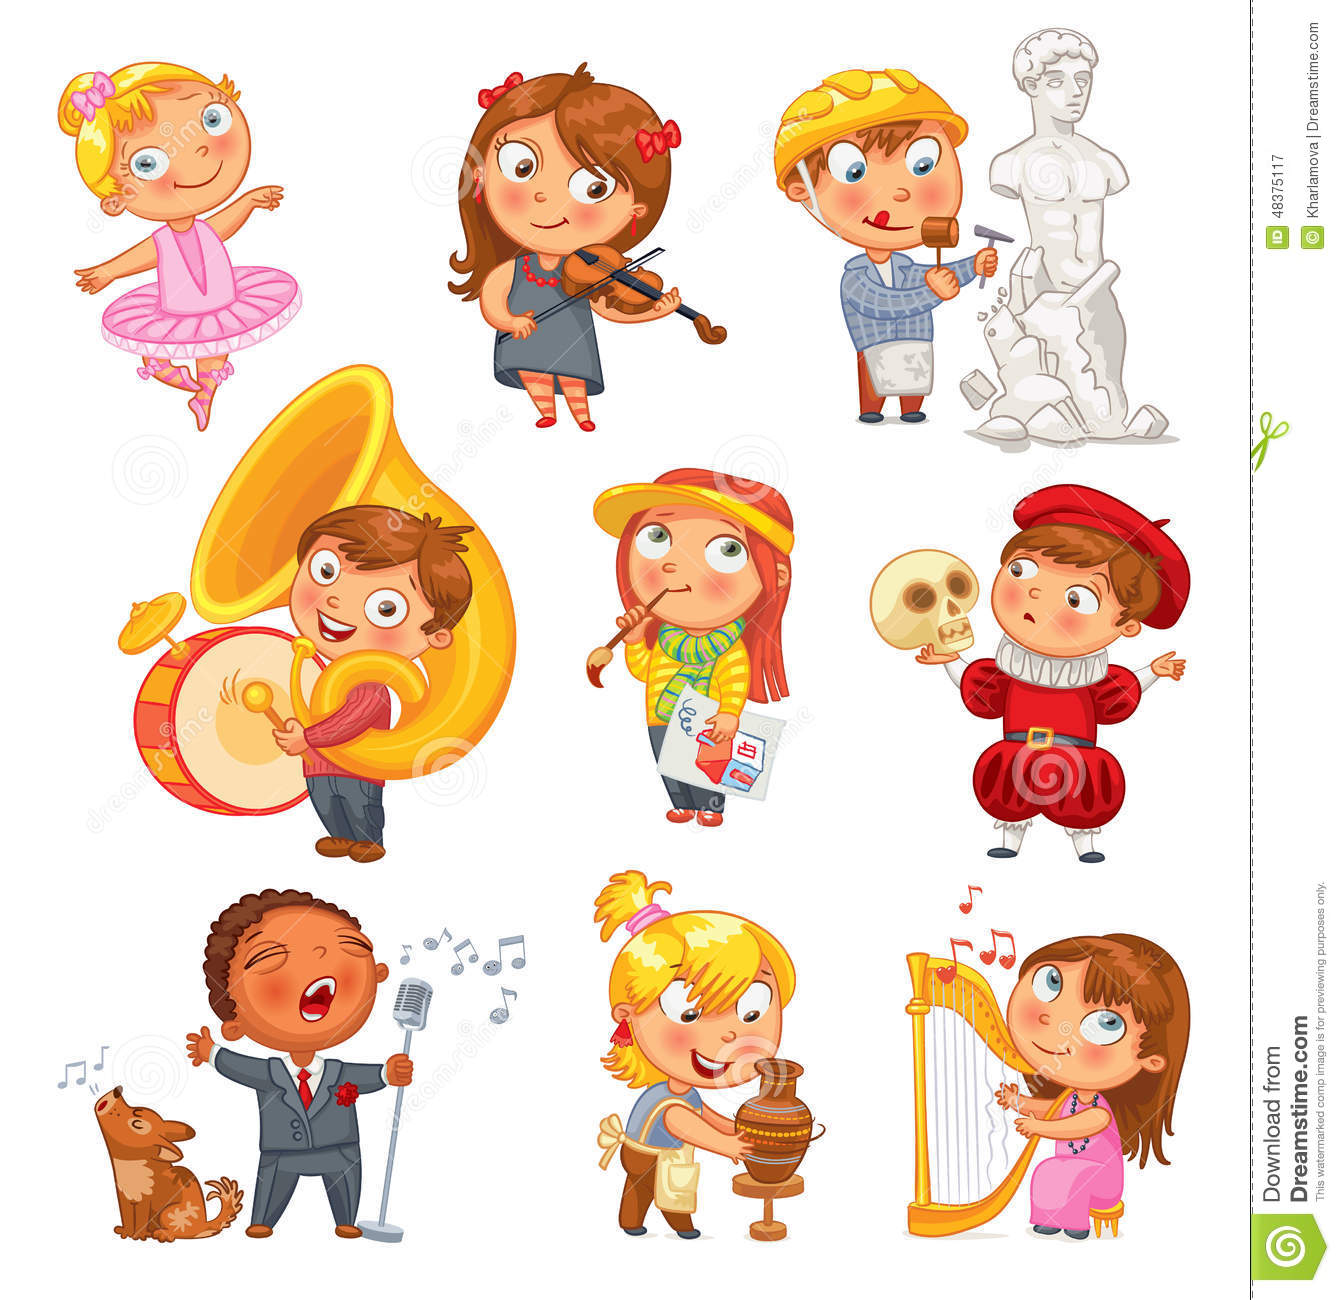 hobbies stock photos images pictures images hobbies funny cartoon character royalty stock photography